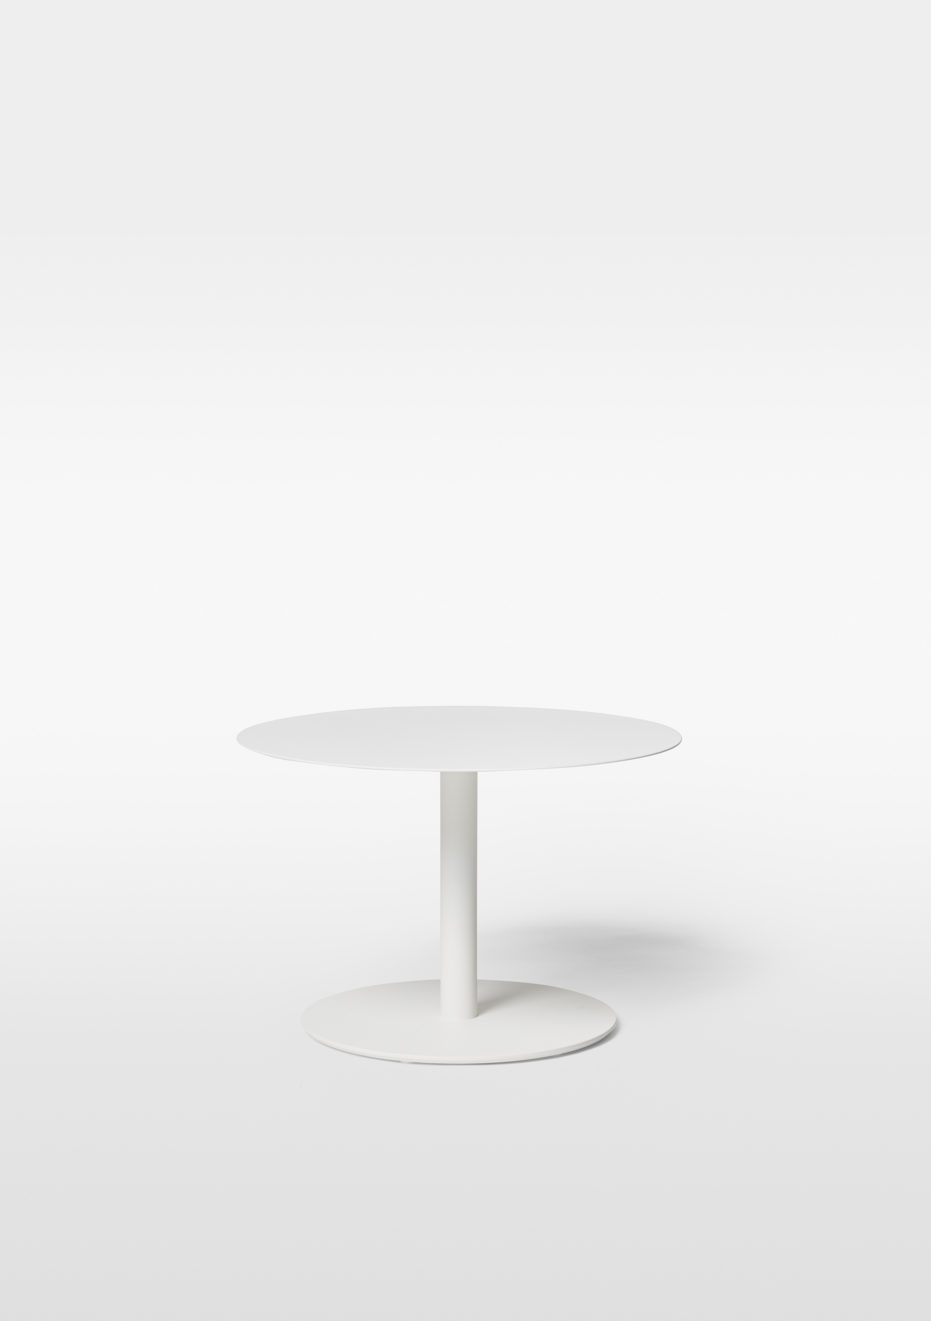 Odette Coffee Table / MASSPRODUCTIONS Product Link SPEC SHEET - Inquire within - info@smlpond.com